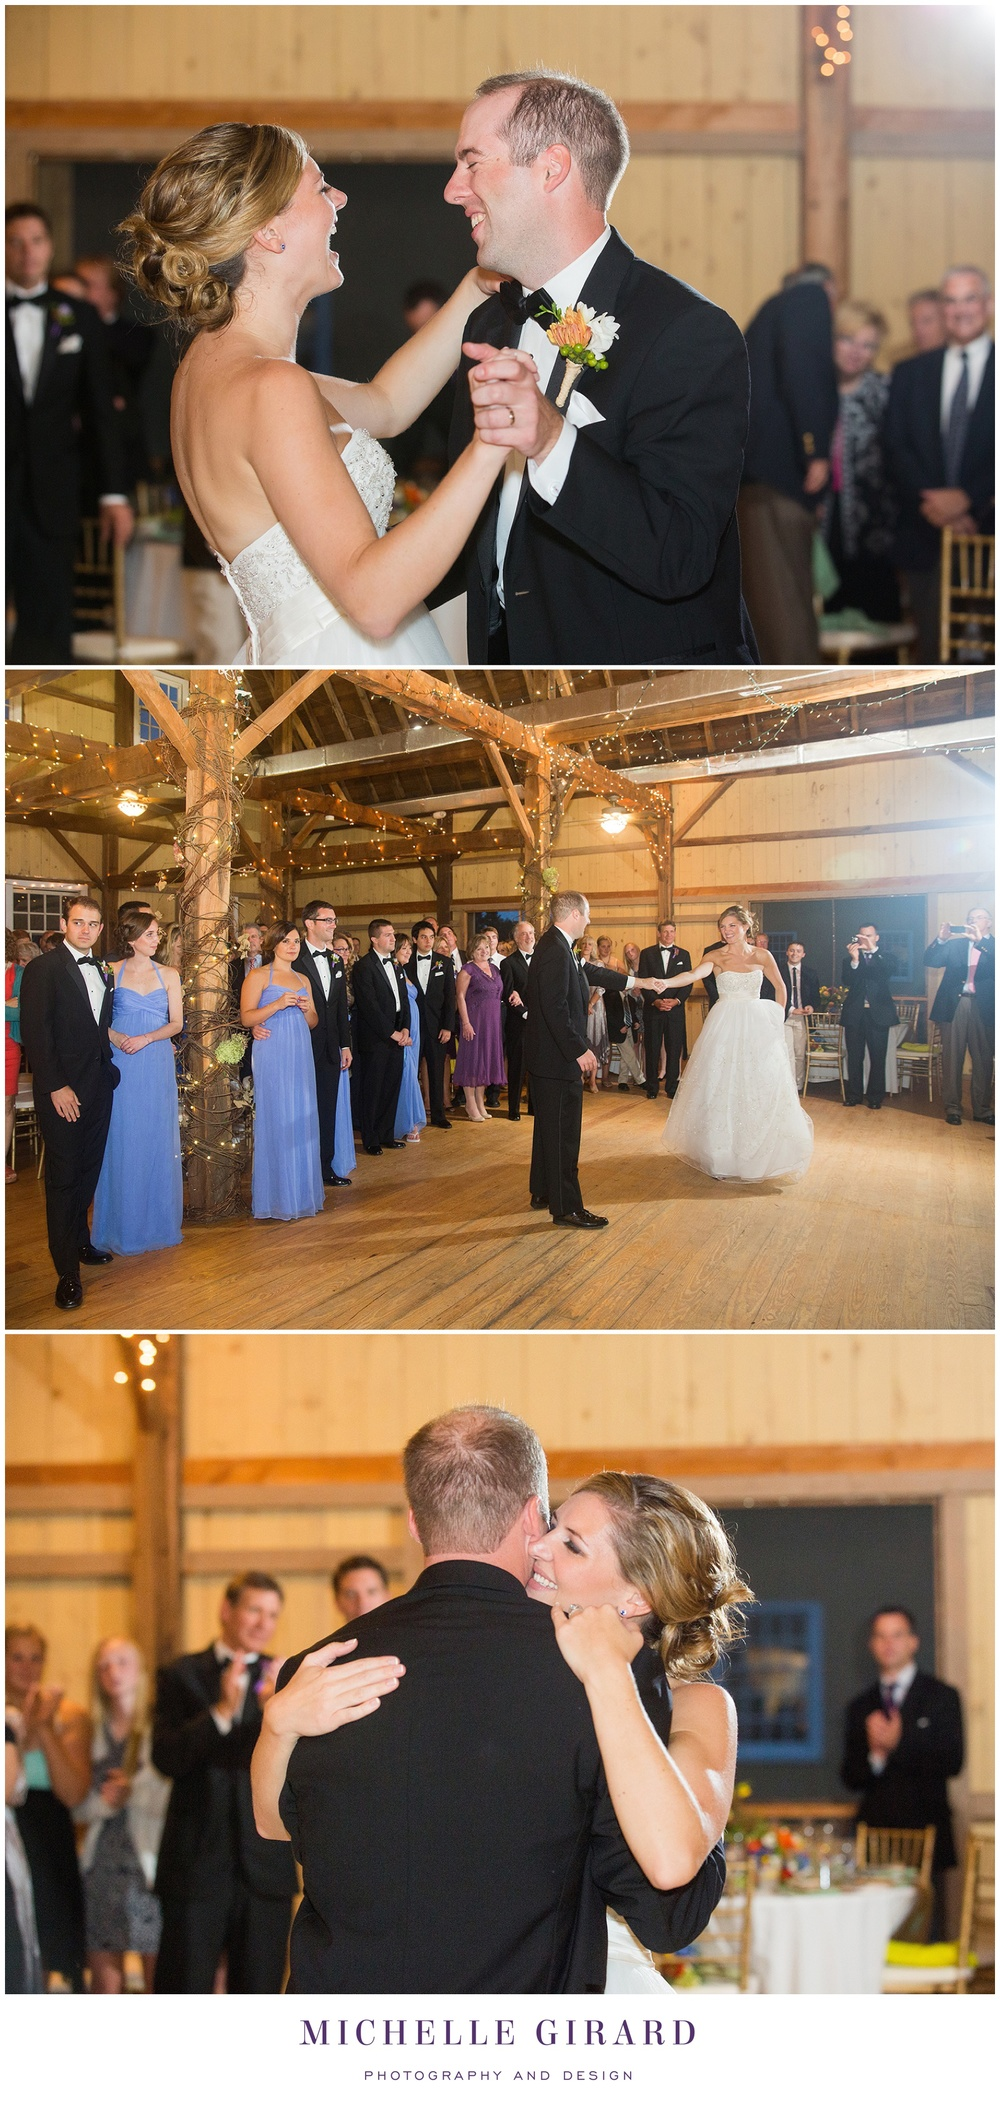 TheRanch_RusticFallWedding_MichelleGirardPhotography14.jpg